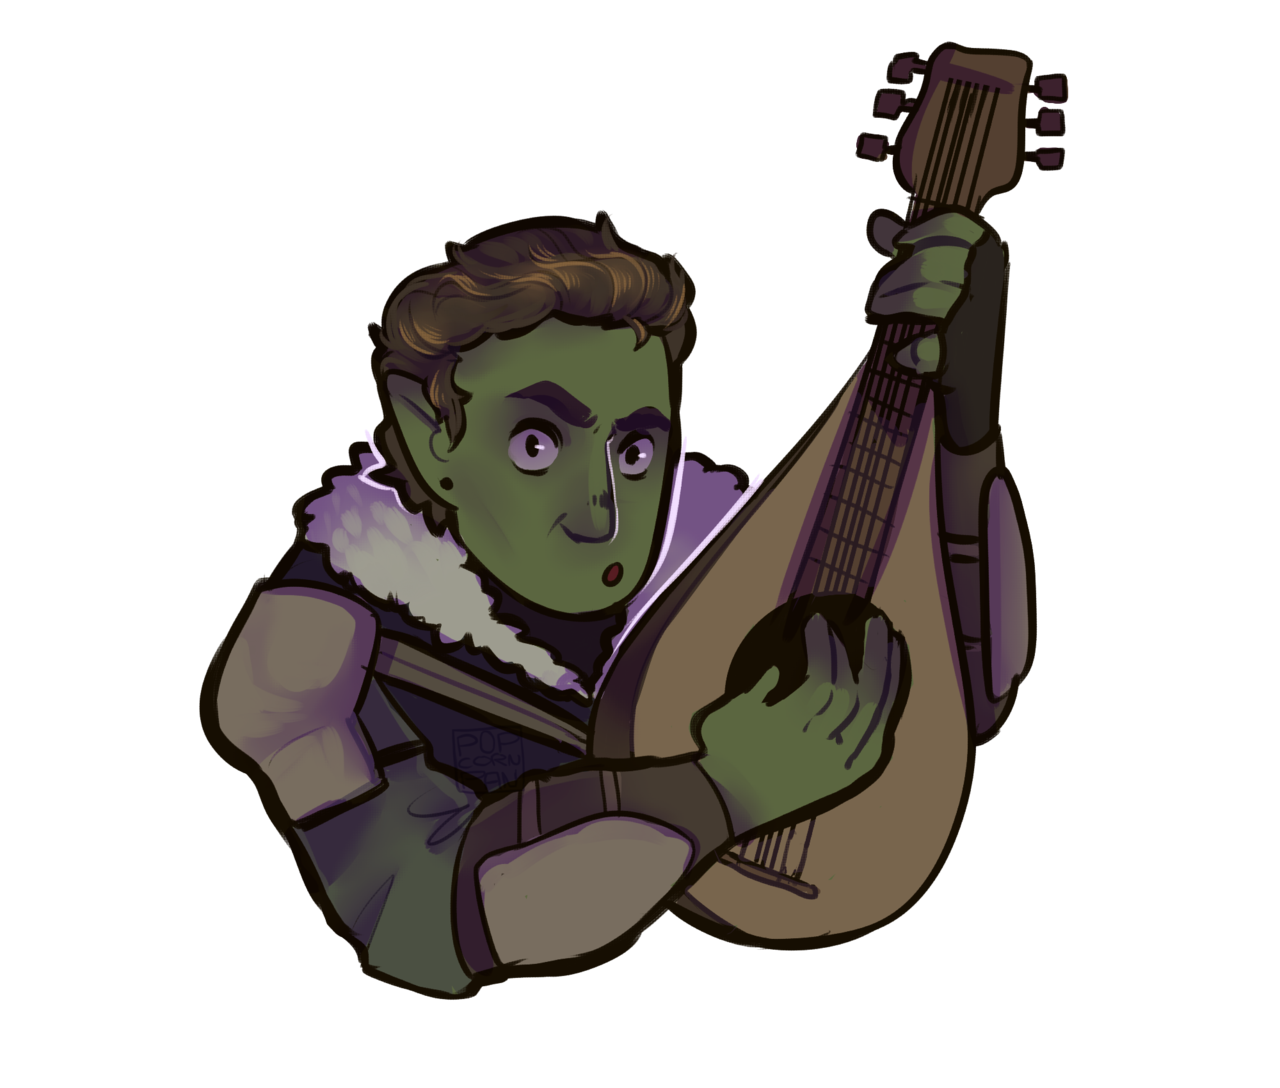 bard drawing boy